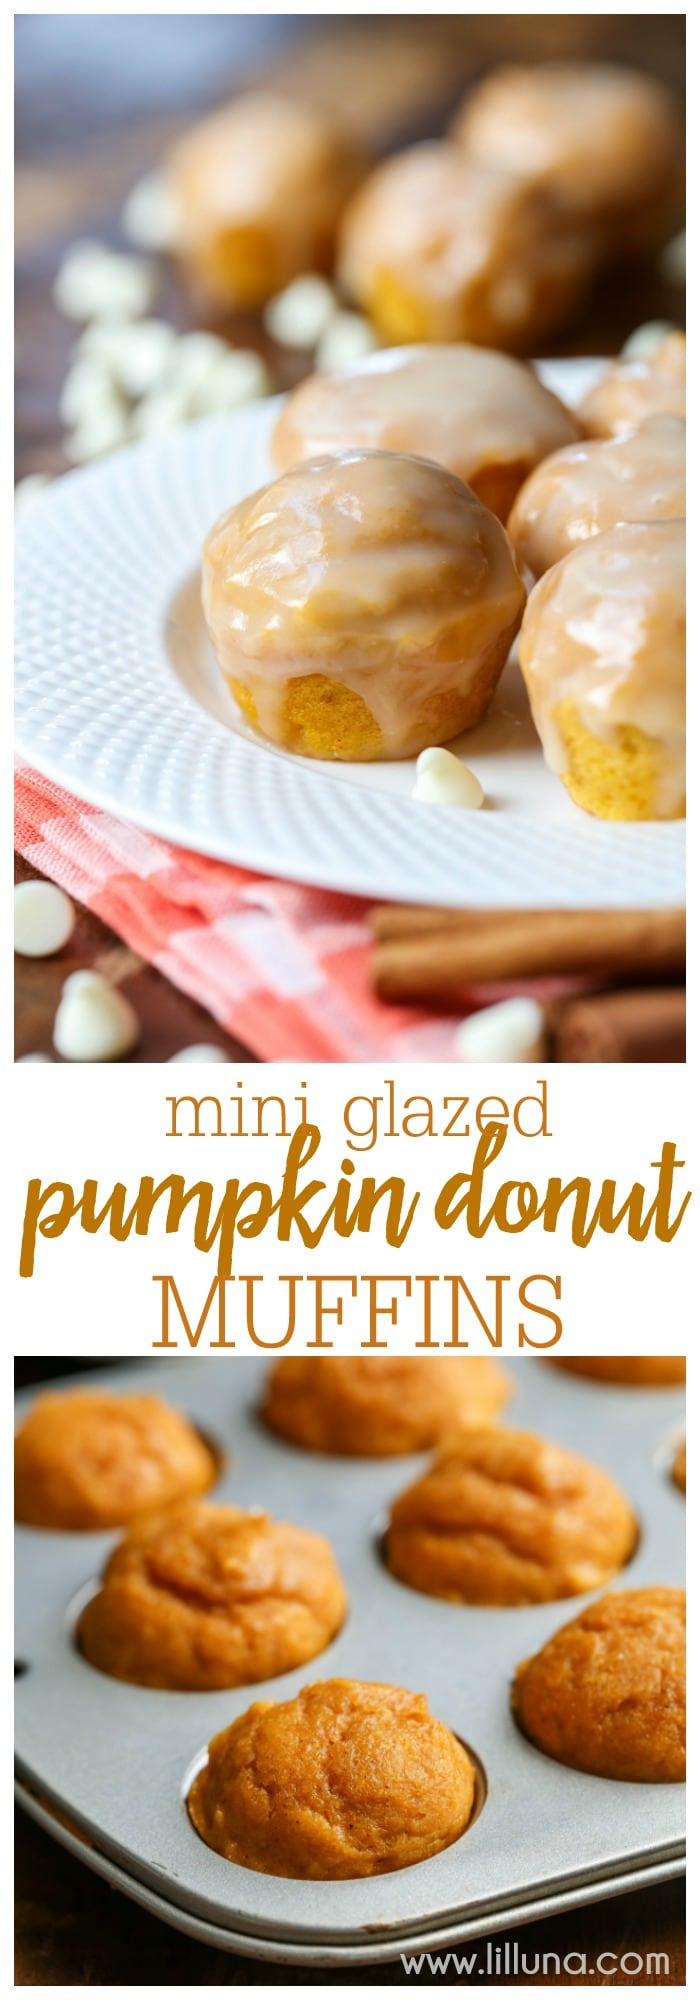 Mini Glazed Pumpkin Donut Muffins - A donut muffin filled with pumpkin and cinnamon flavors, topped with a spiced white chocolate glaze. One word: IRRESISTIBLE!!